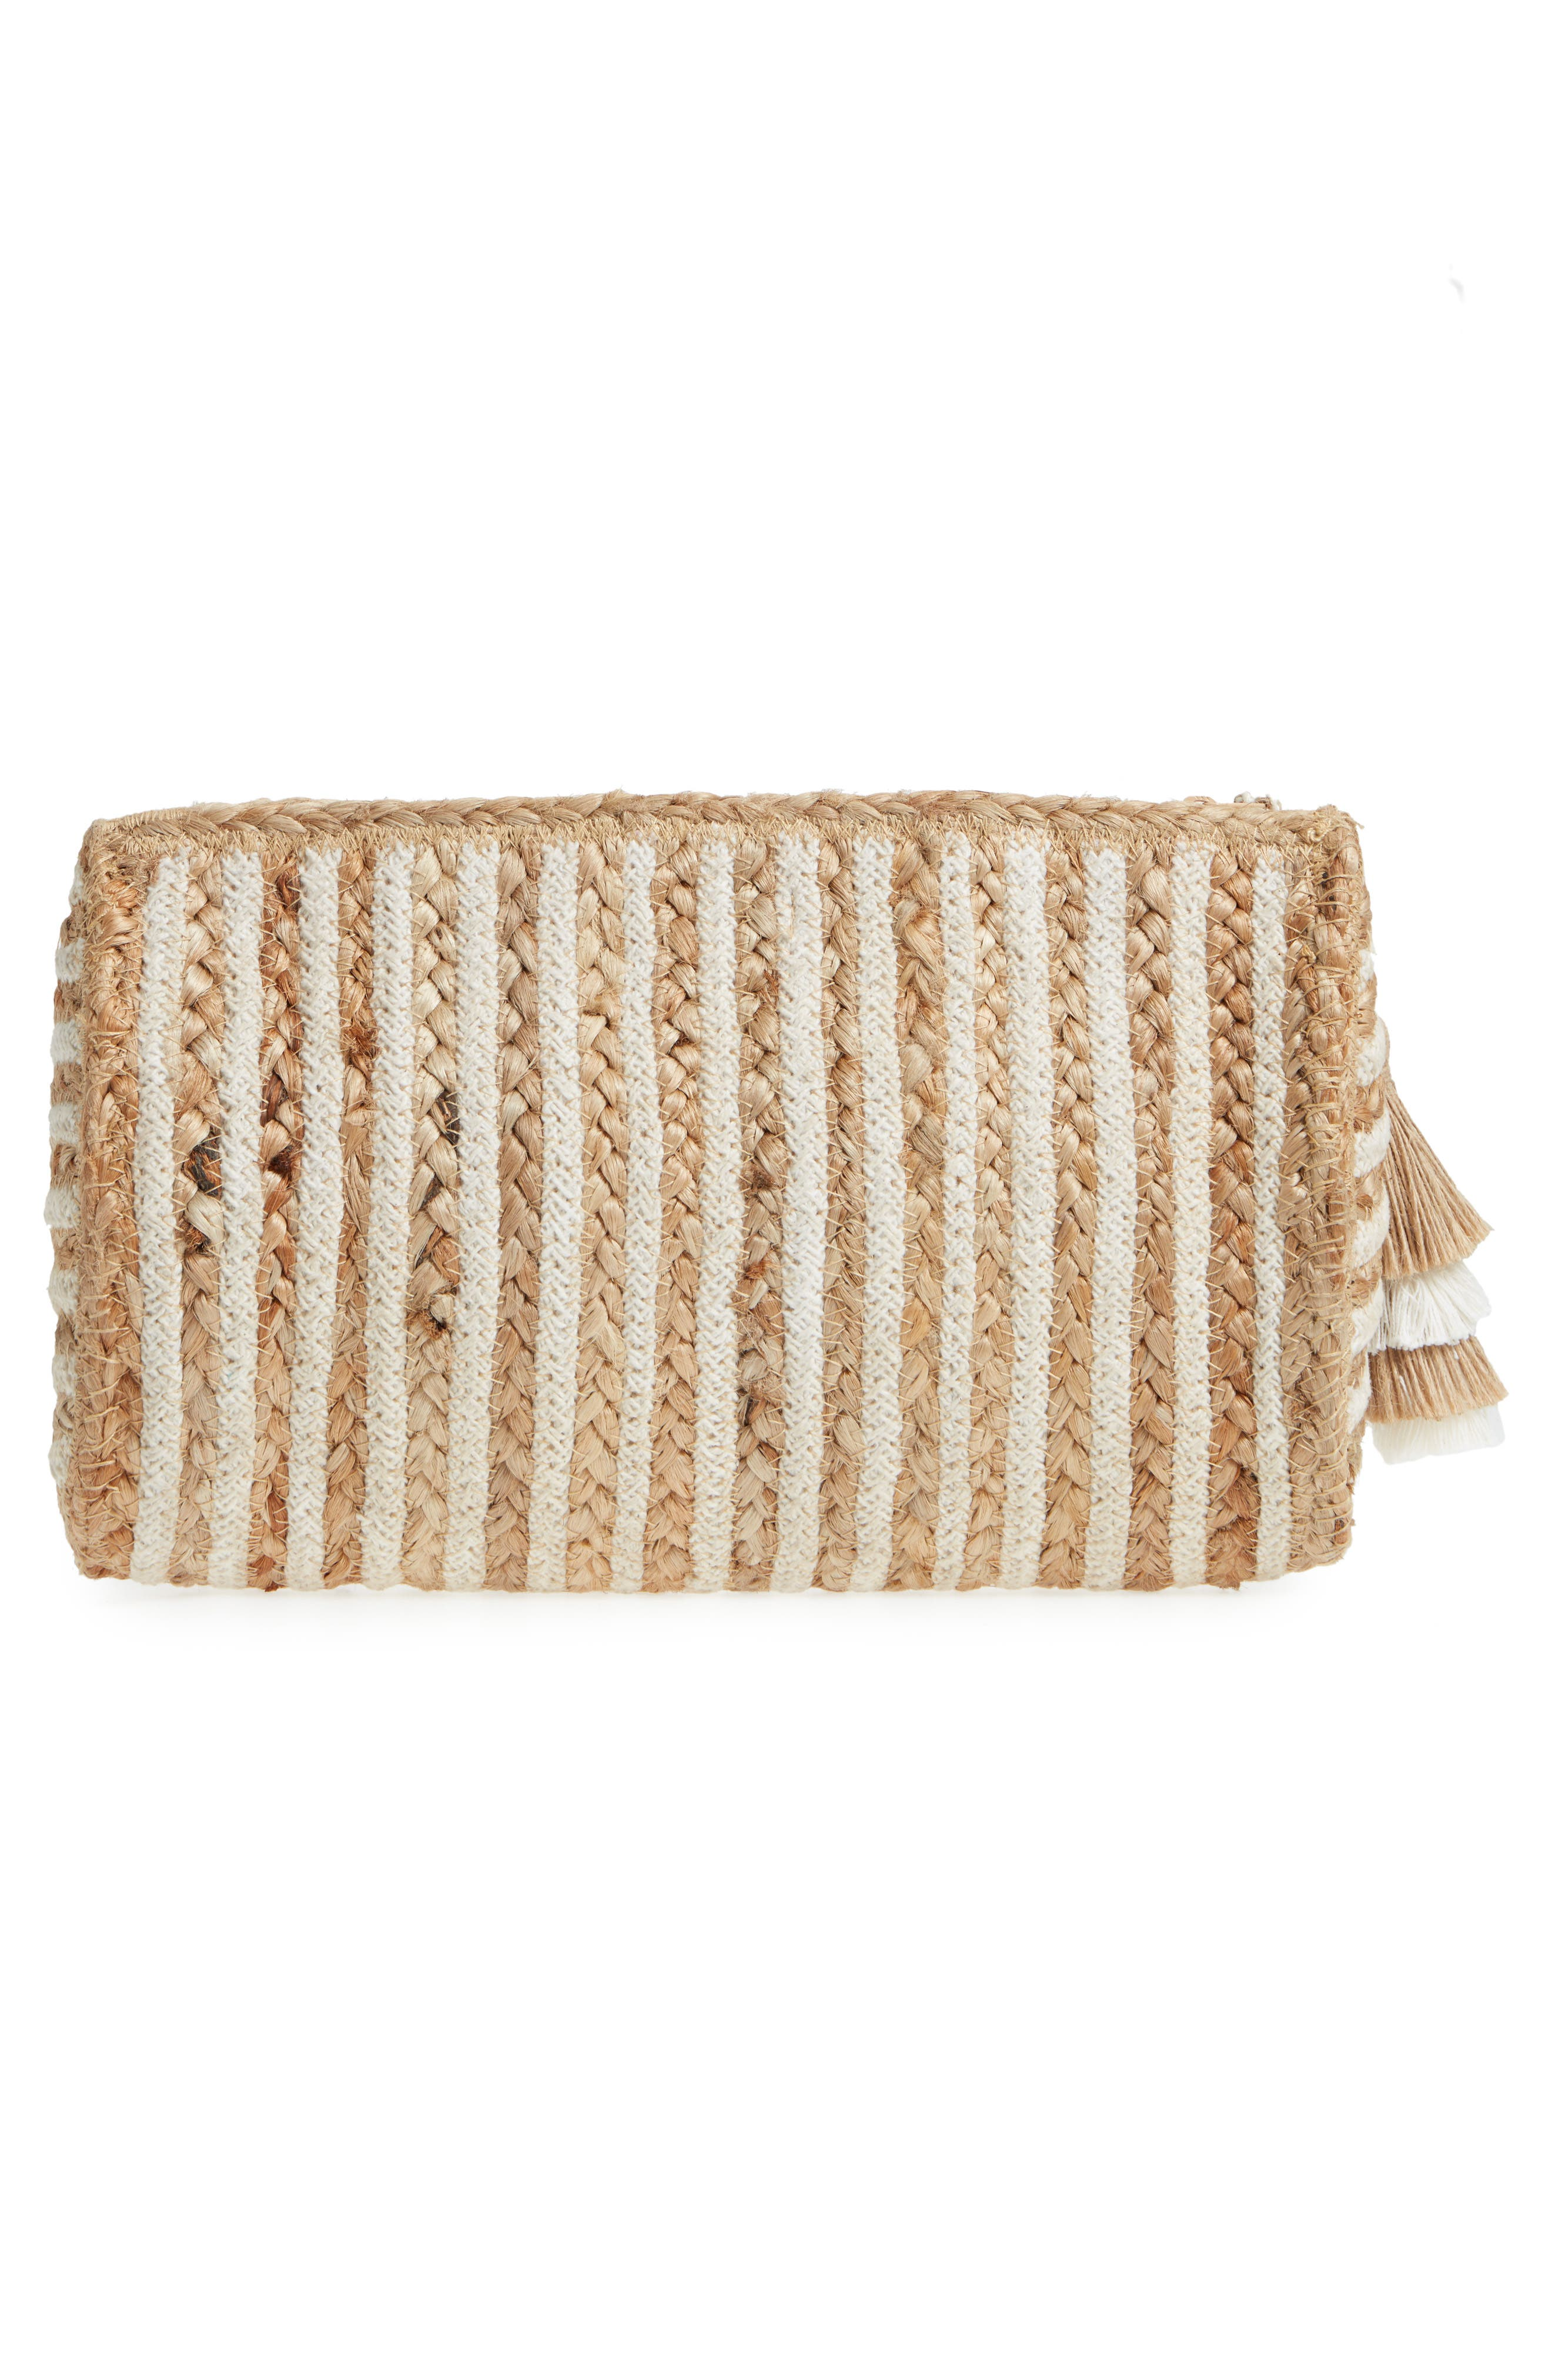 Mare Straw Clutch,                             Alternate thumbnail 3, color,                             Ivory